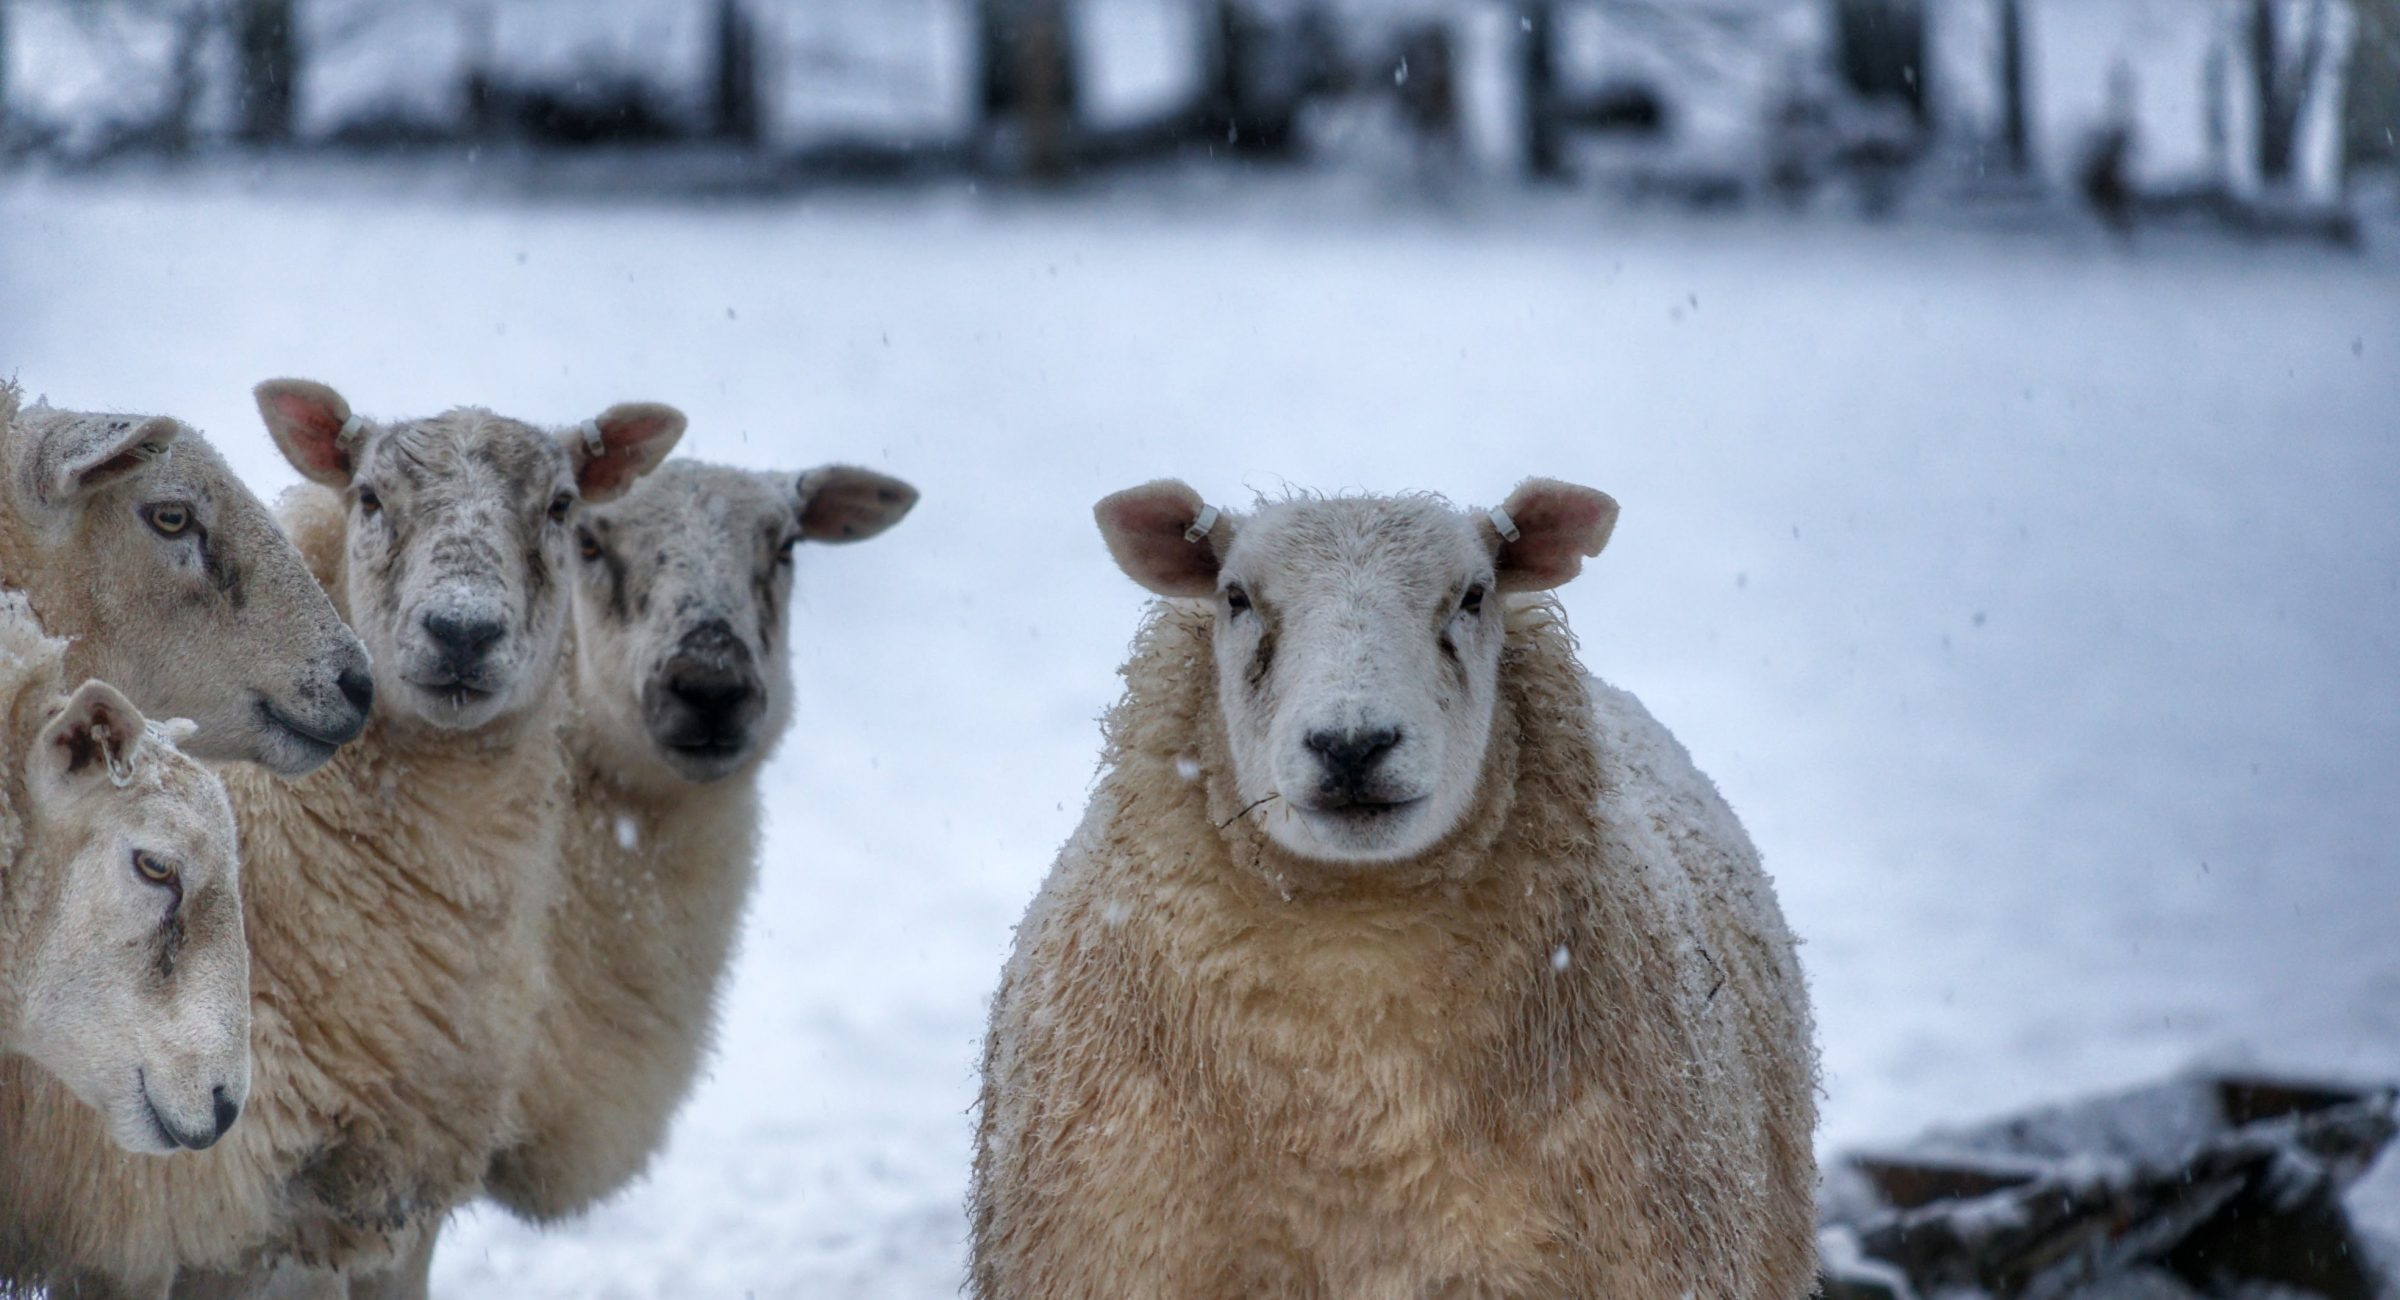 sheep looking into camera on snowy day